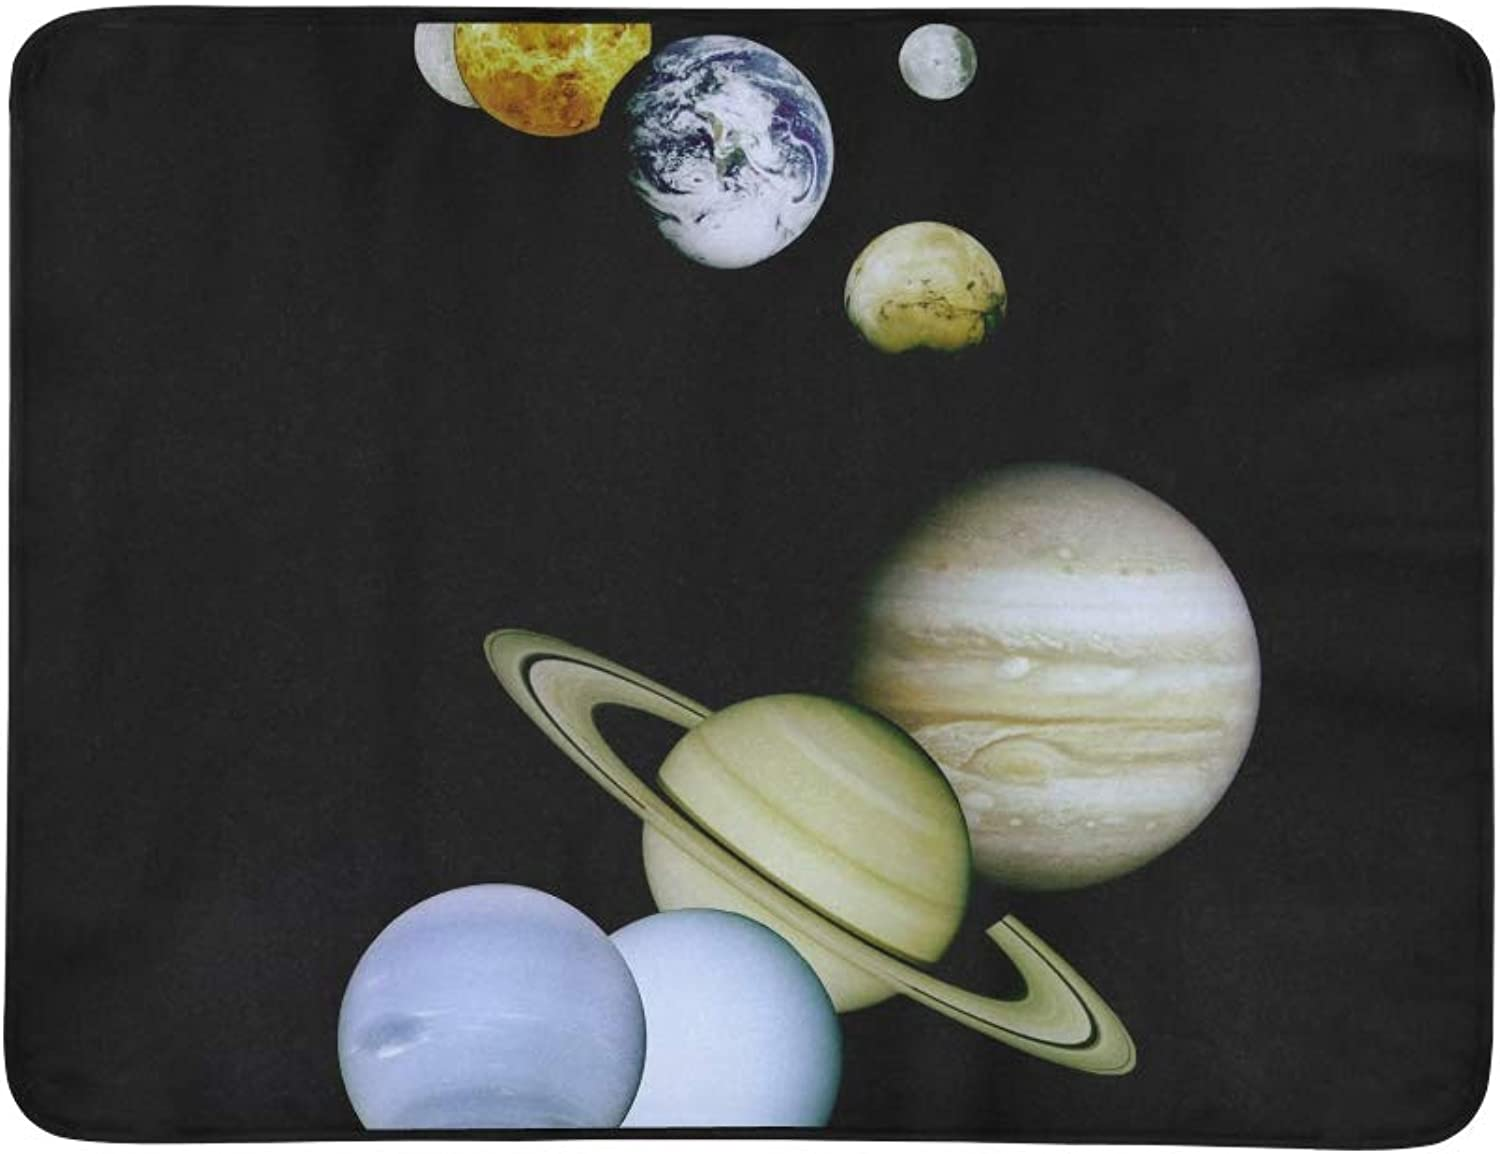 A Montage of All The Planets O Pattern Portable and Foldable Blanket Mat 60x78 Inch Handy Mat for Camping Picnic Beach Indoor Outdoor Travel